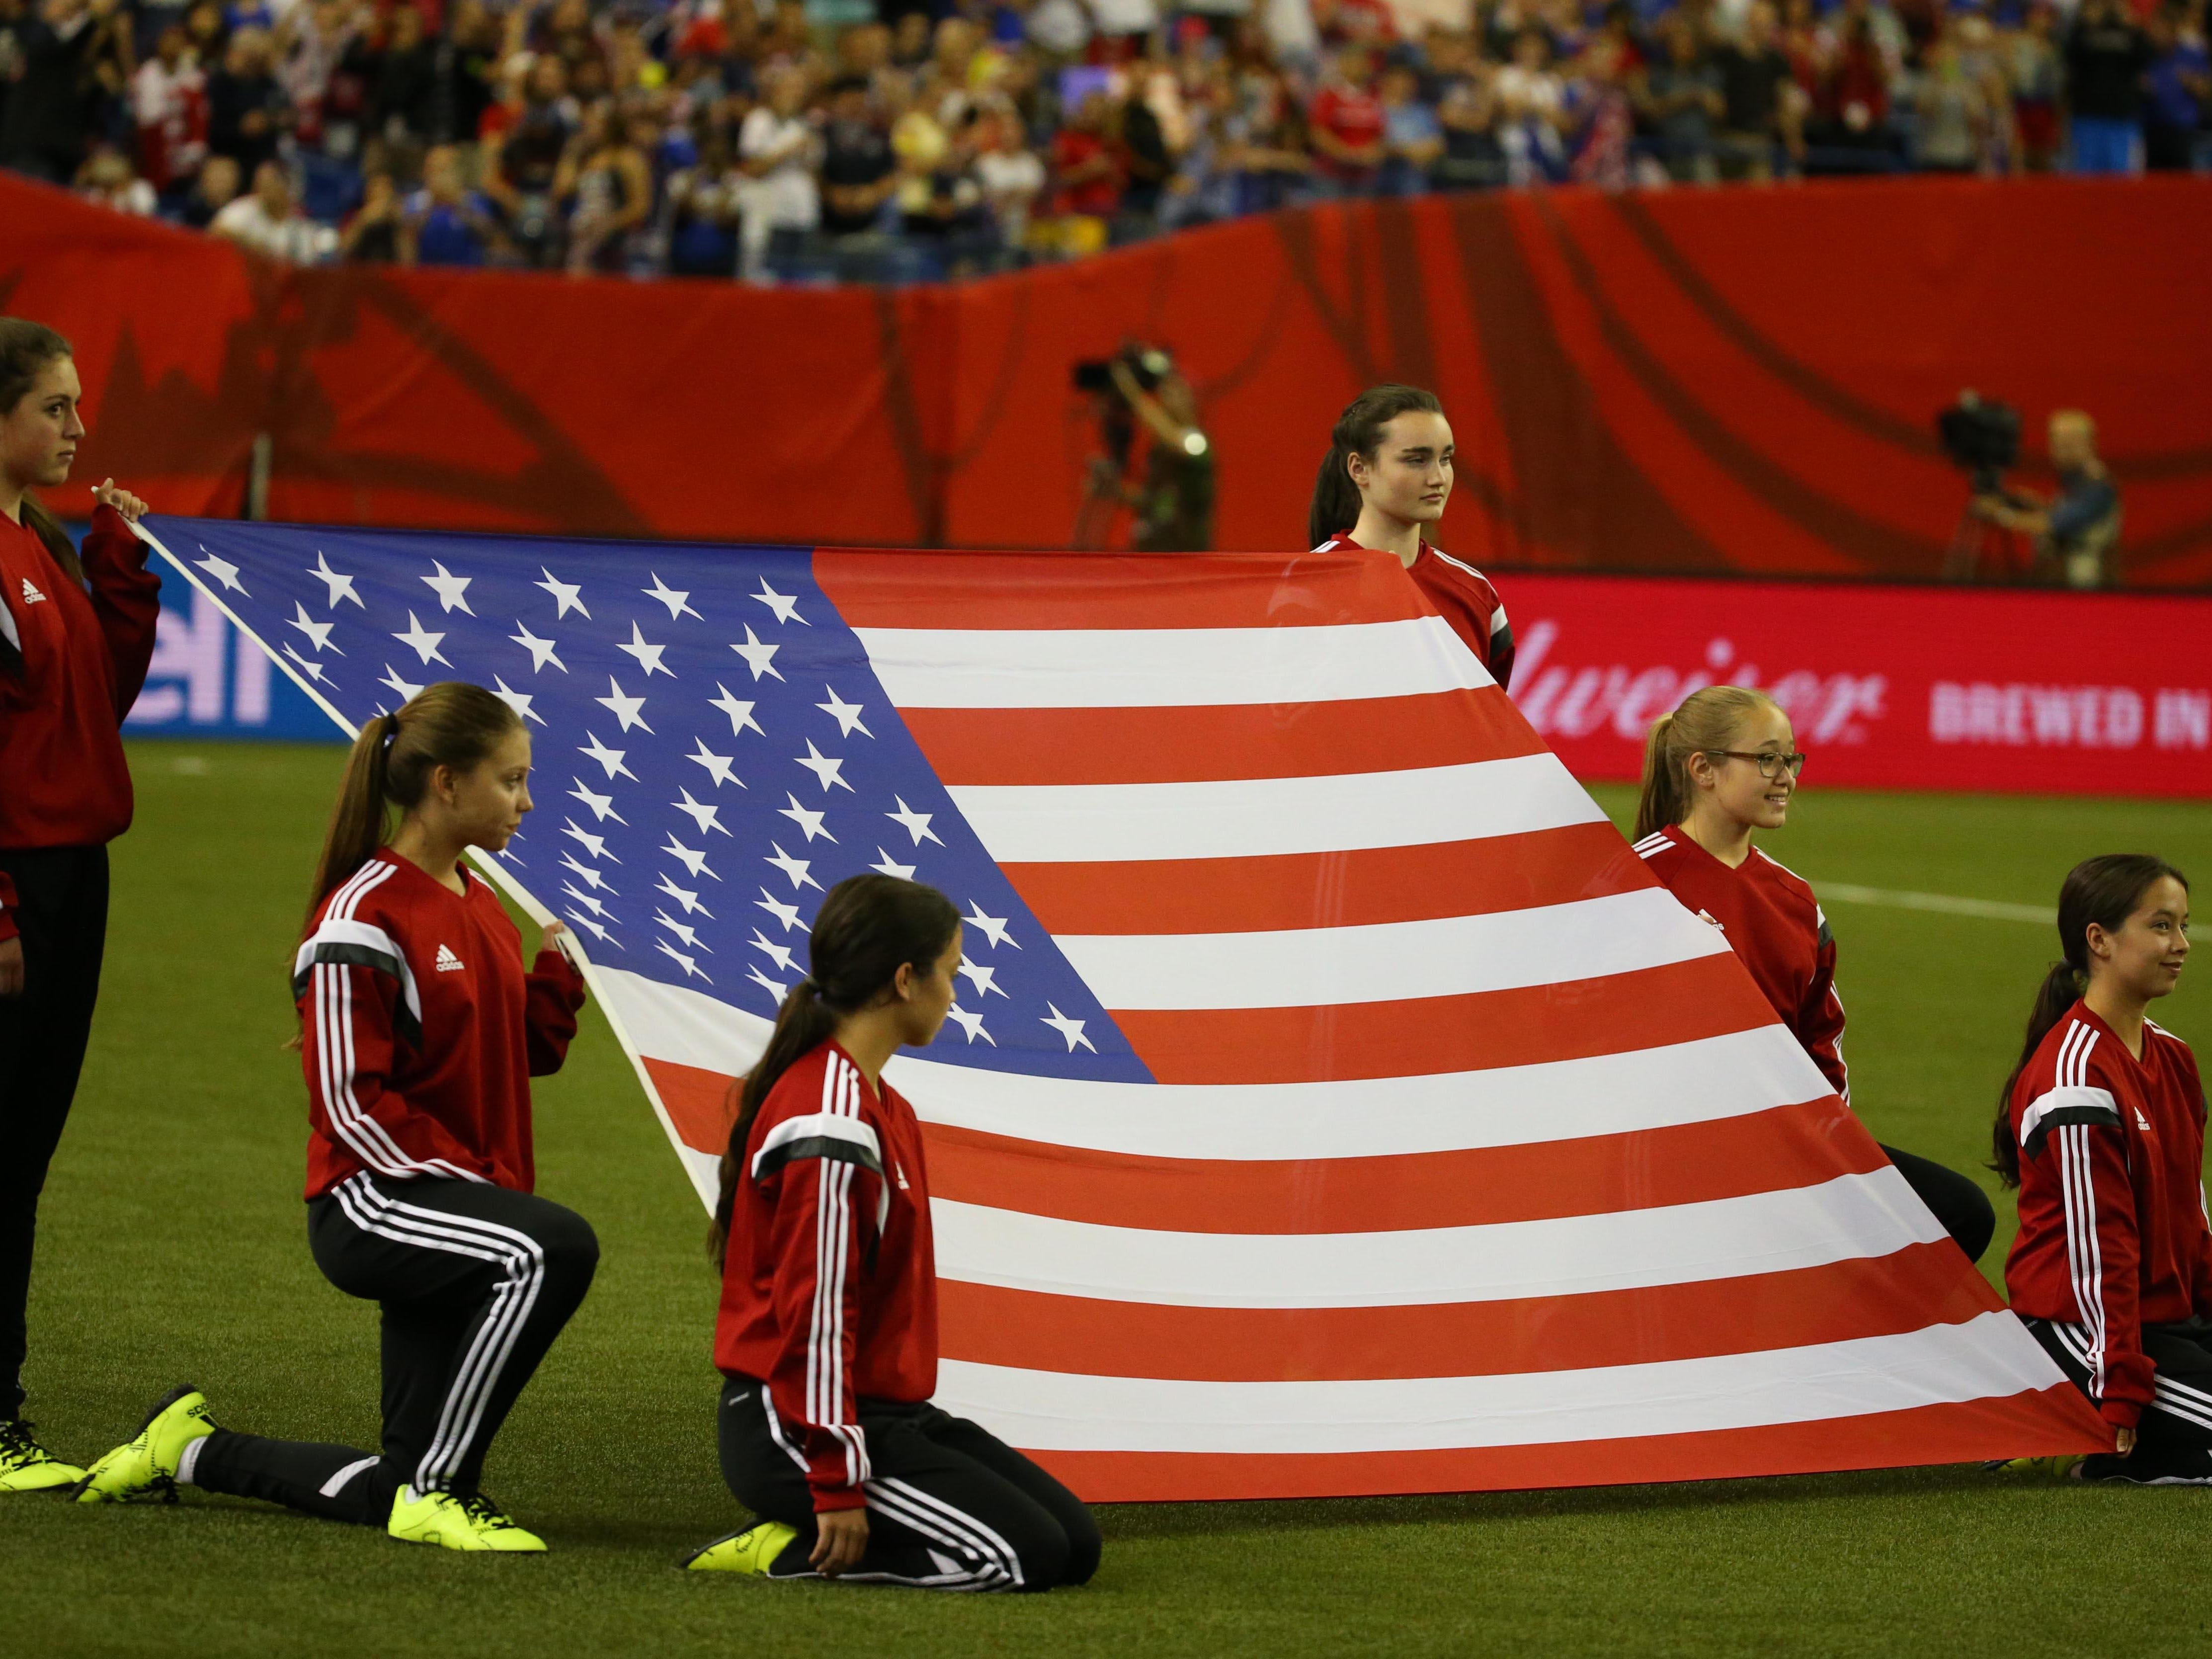 Girls present a United States flag on the field prior to the game against Germany during the semifinals of the FIFA 2015 Women's World Cup.